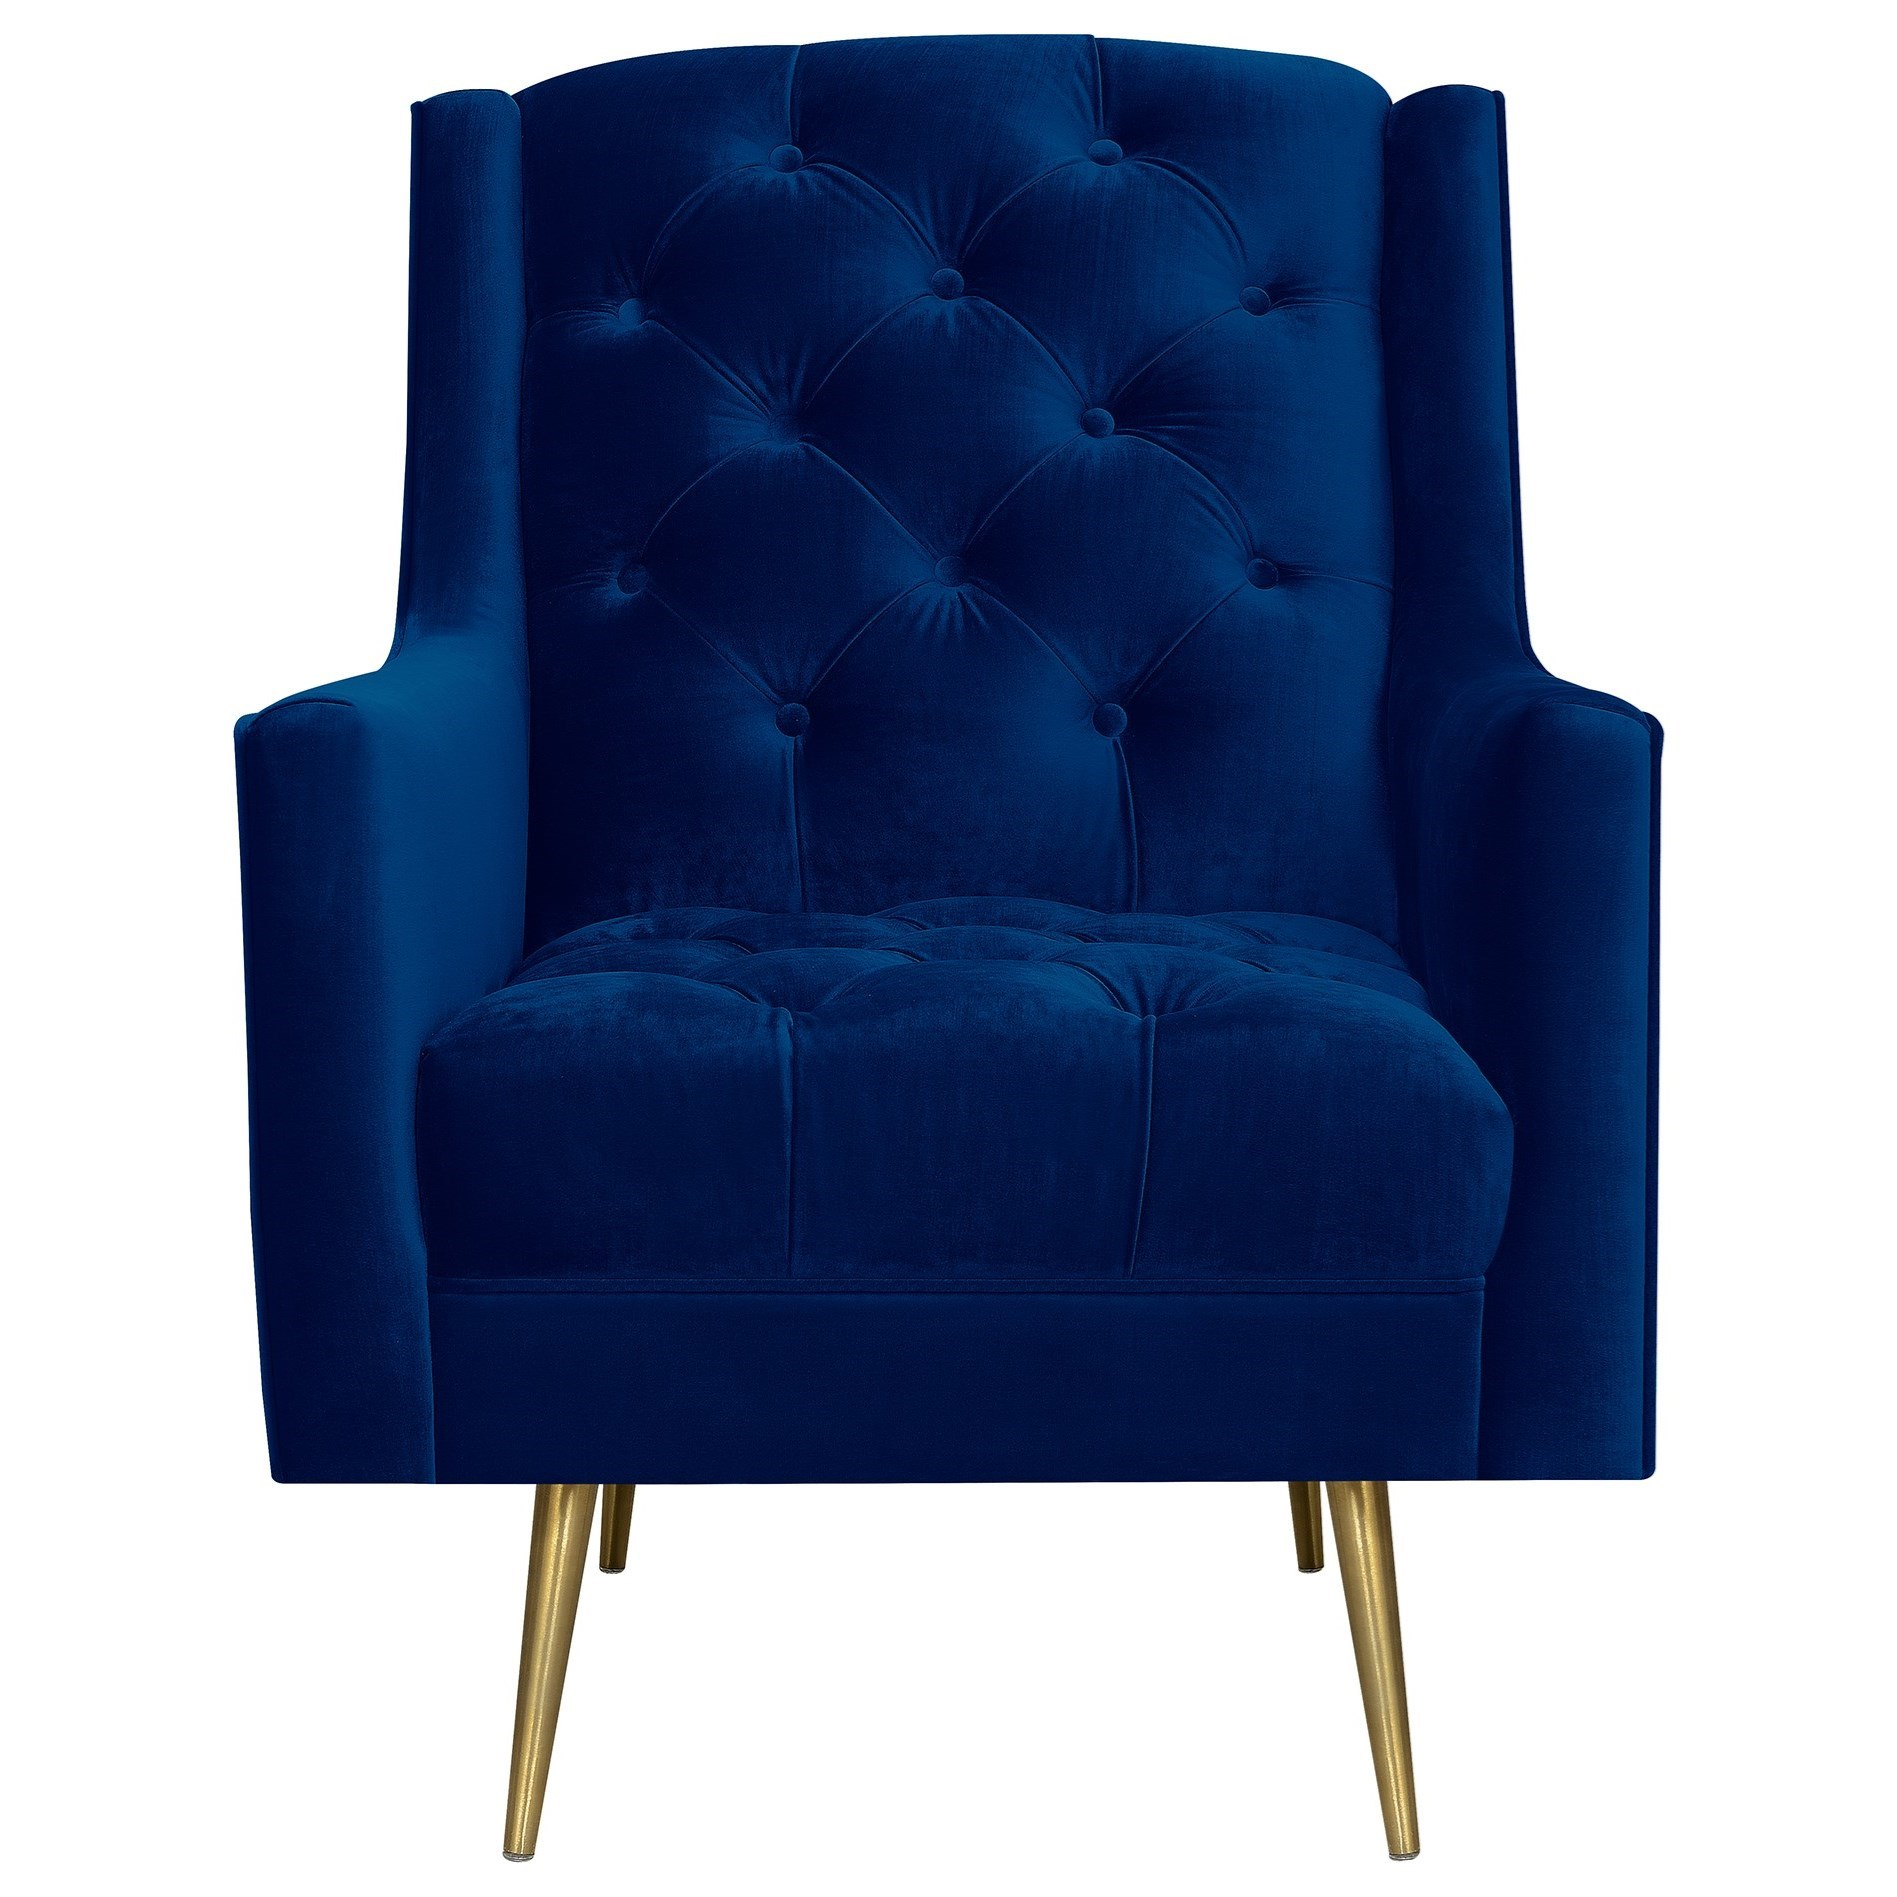 Accent Chair with Gold Legs